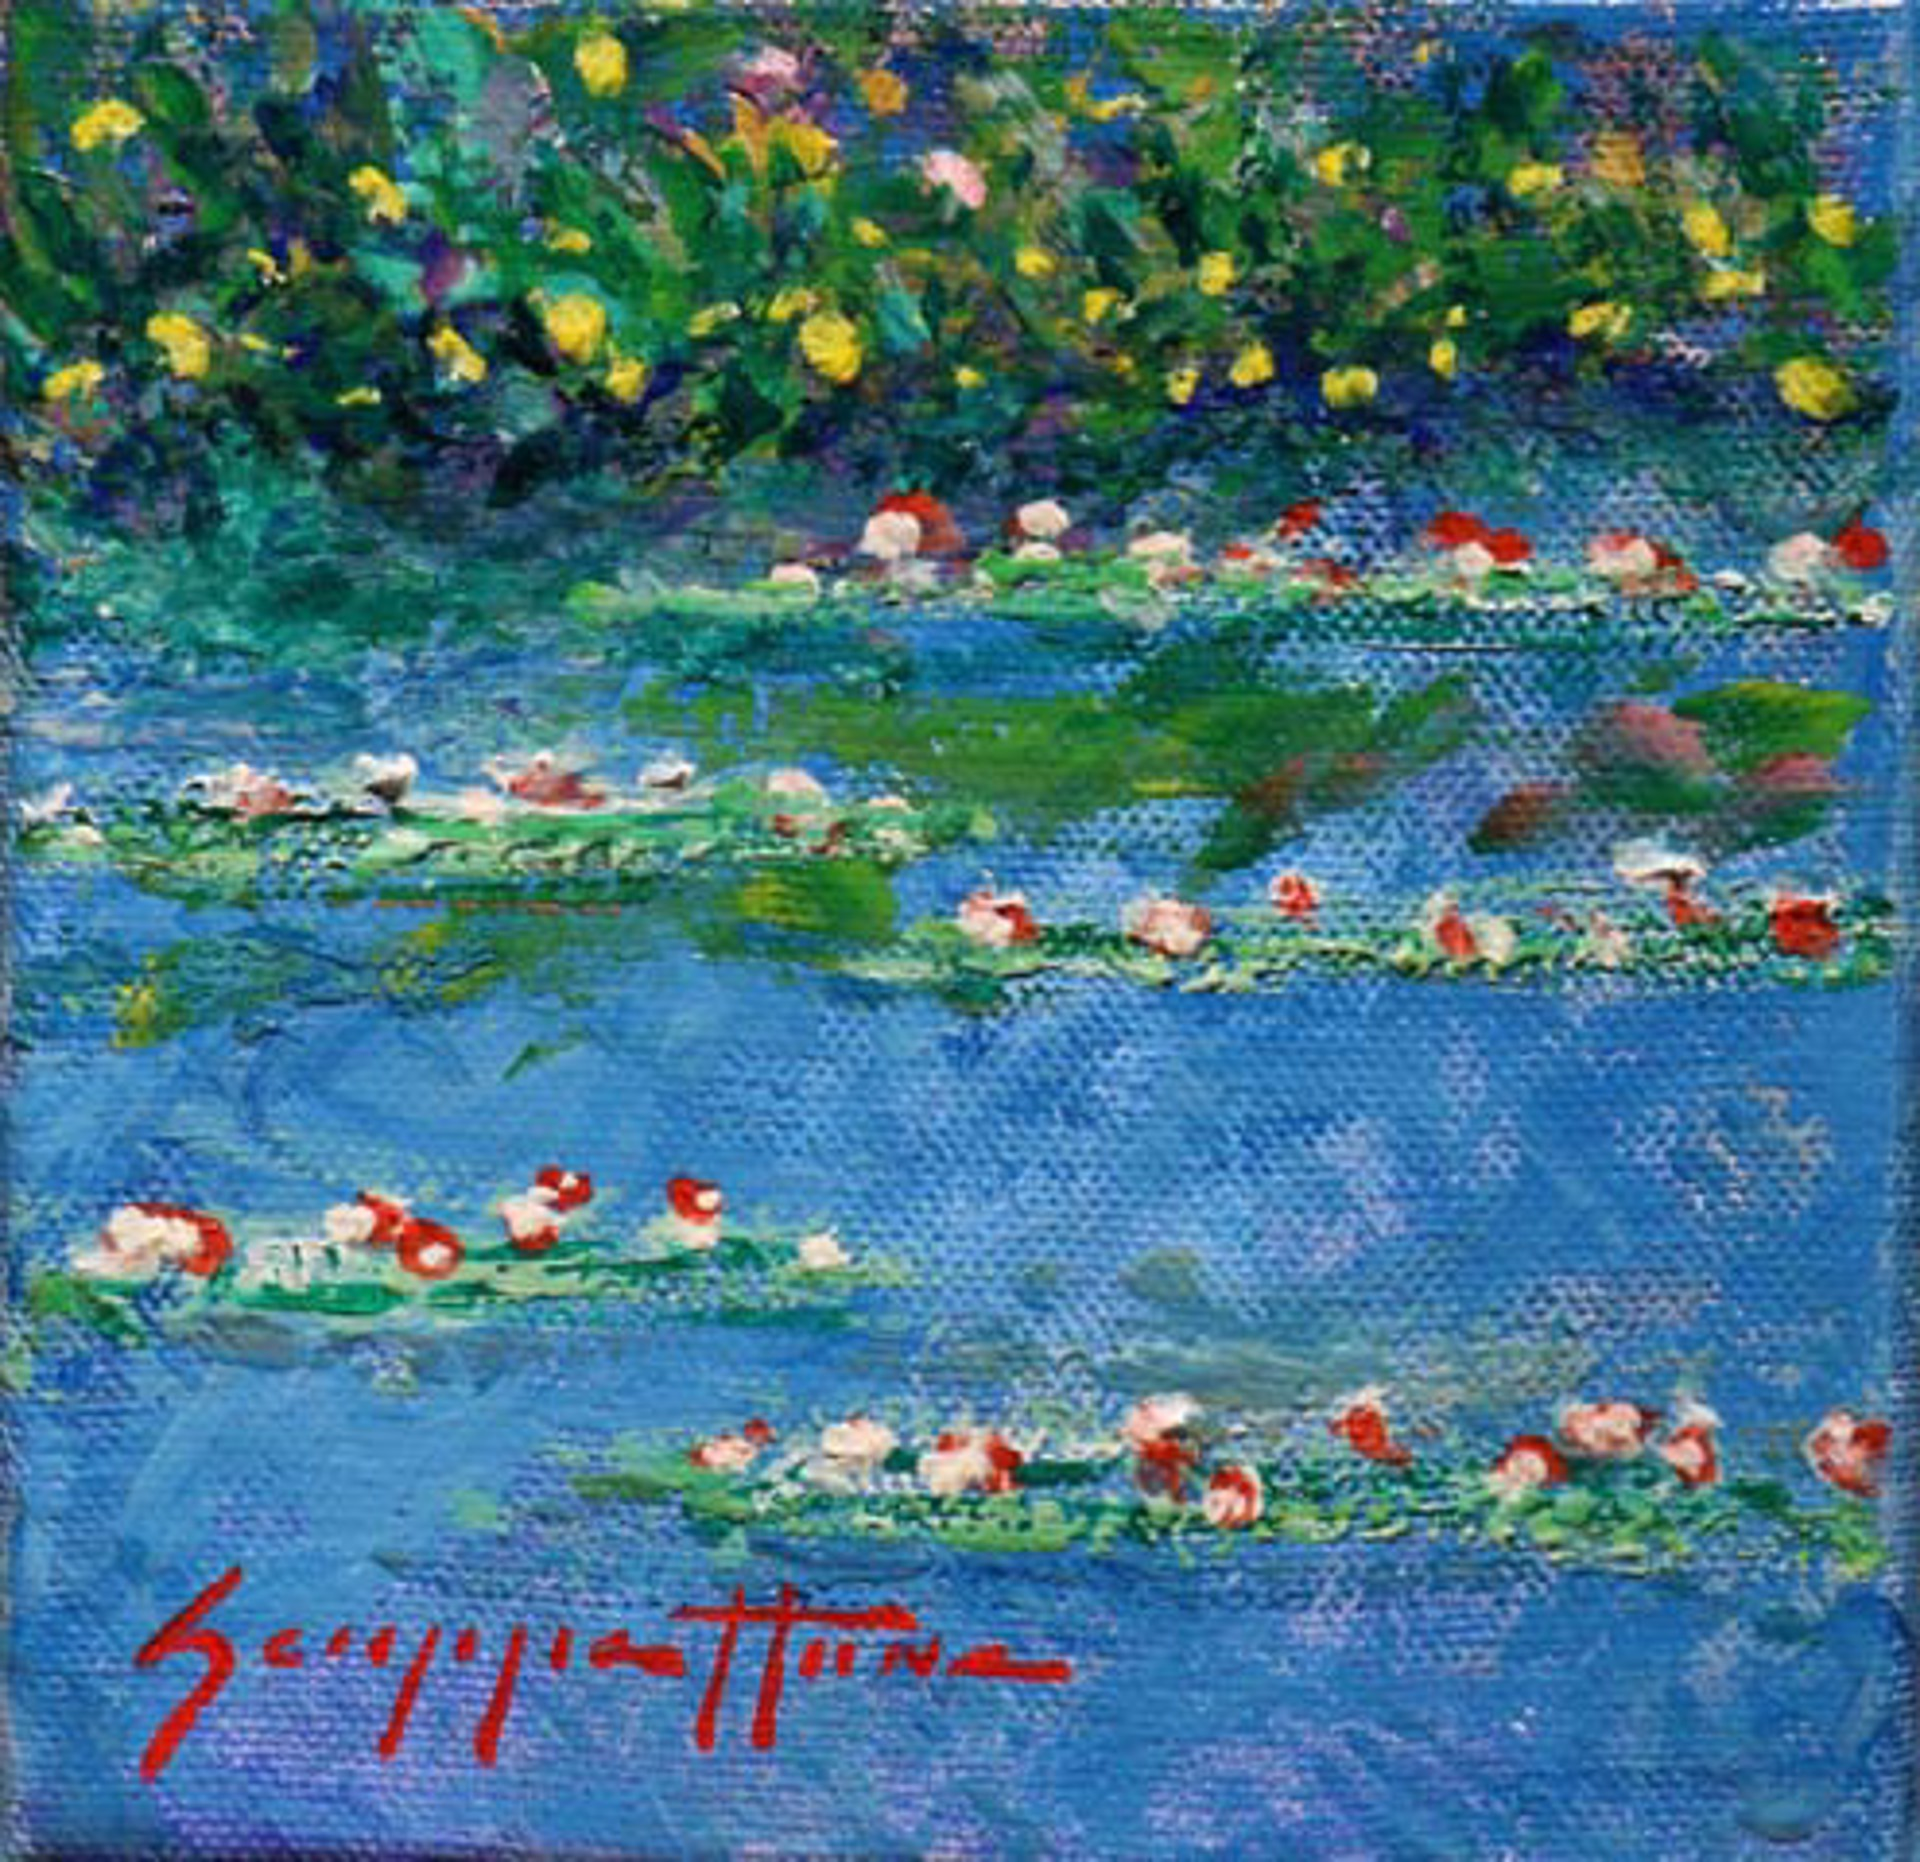 Lilies Along The Bank by James Scoppettone